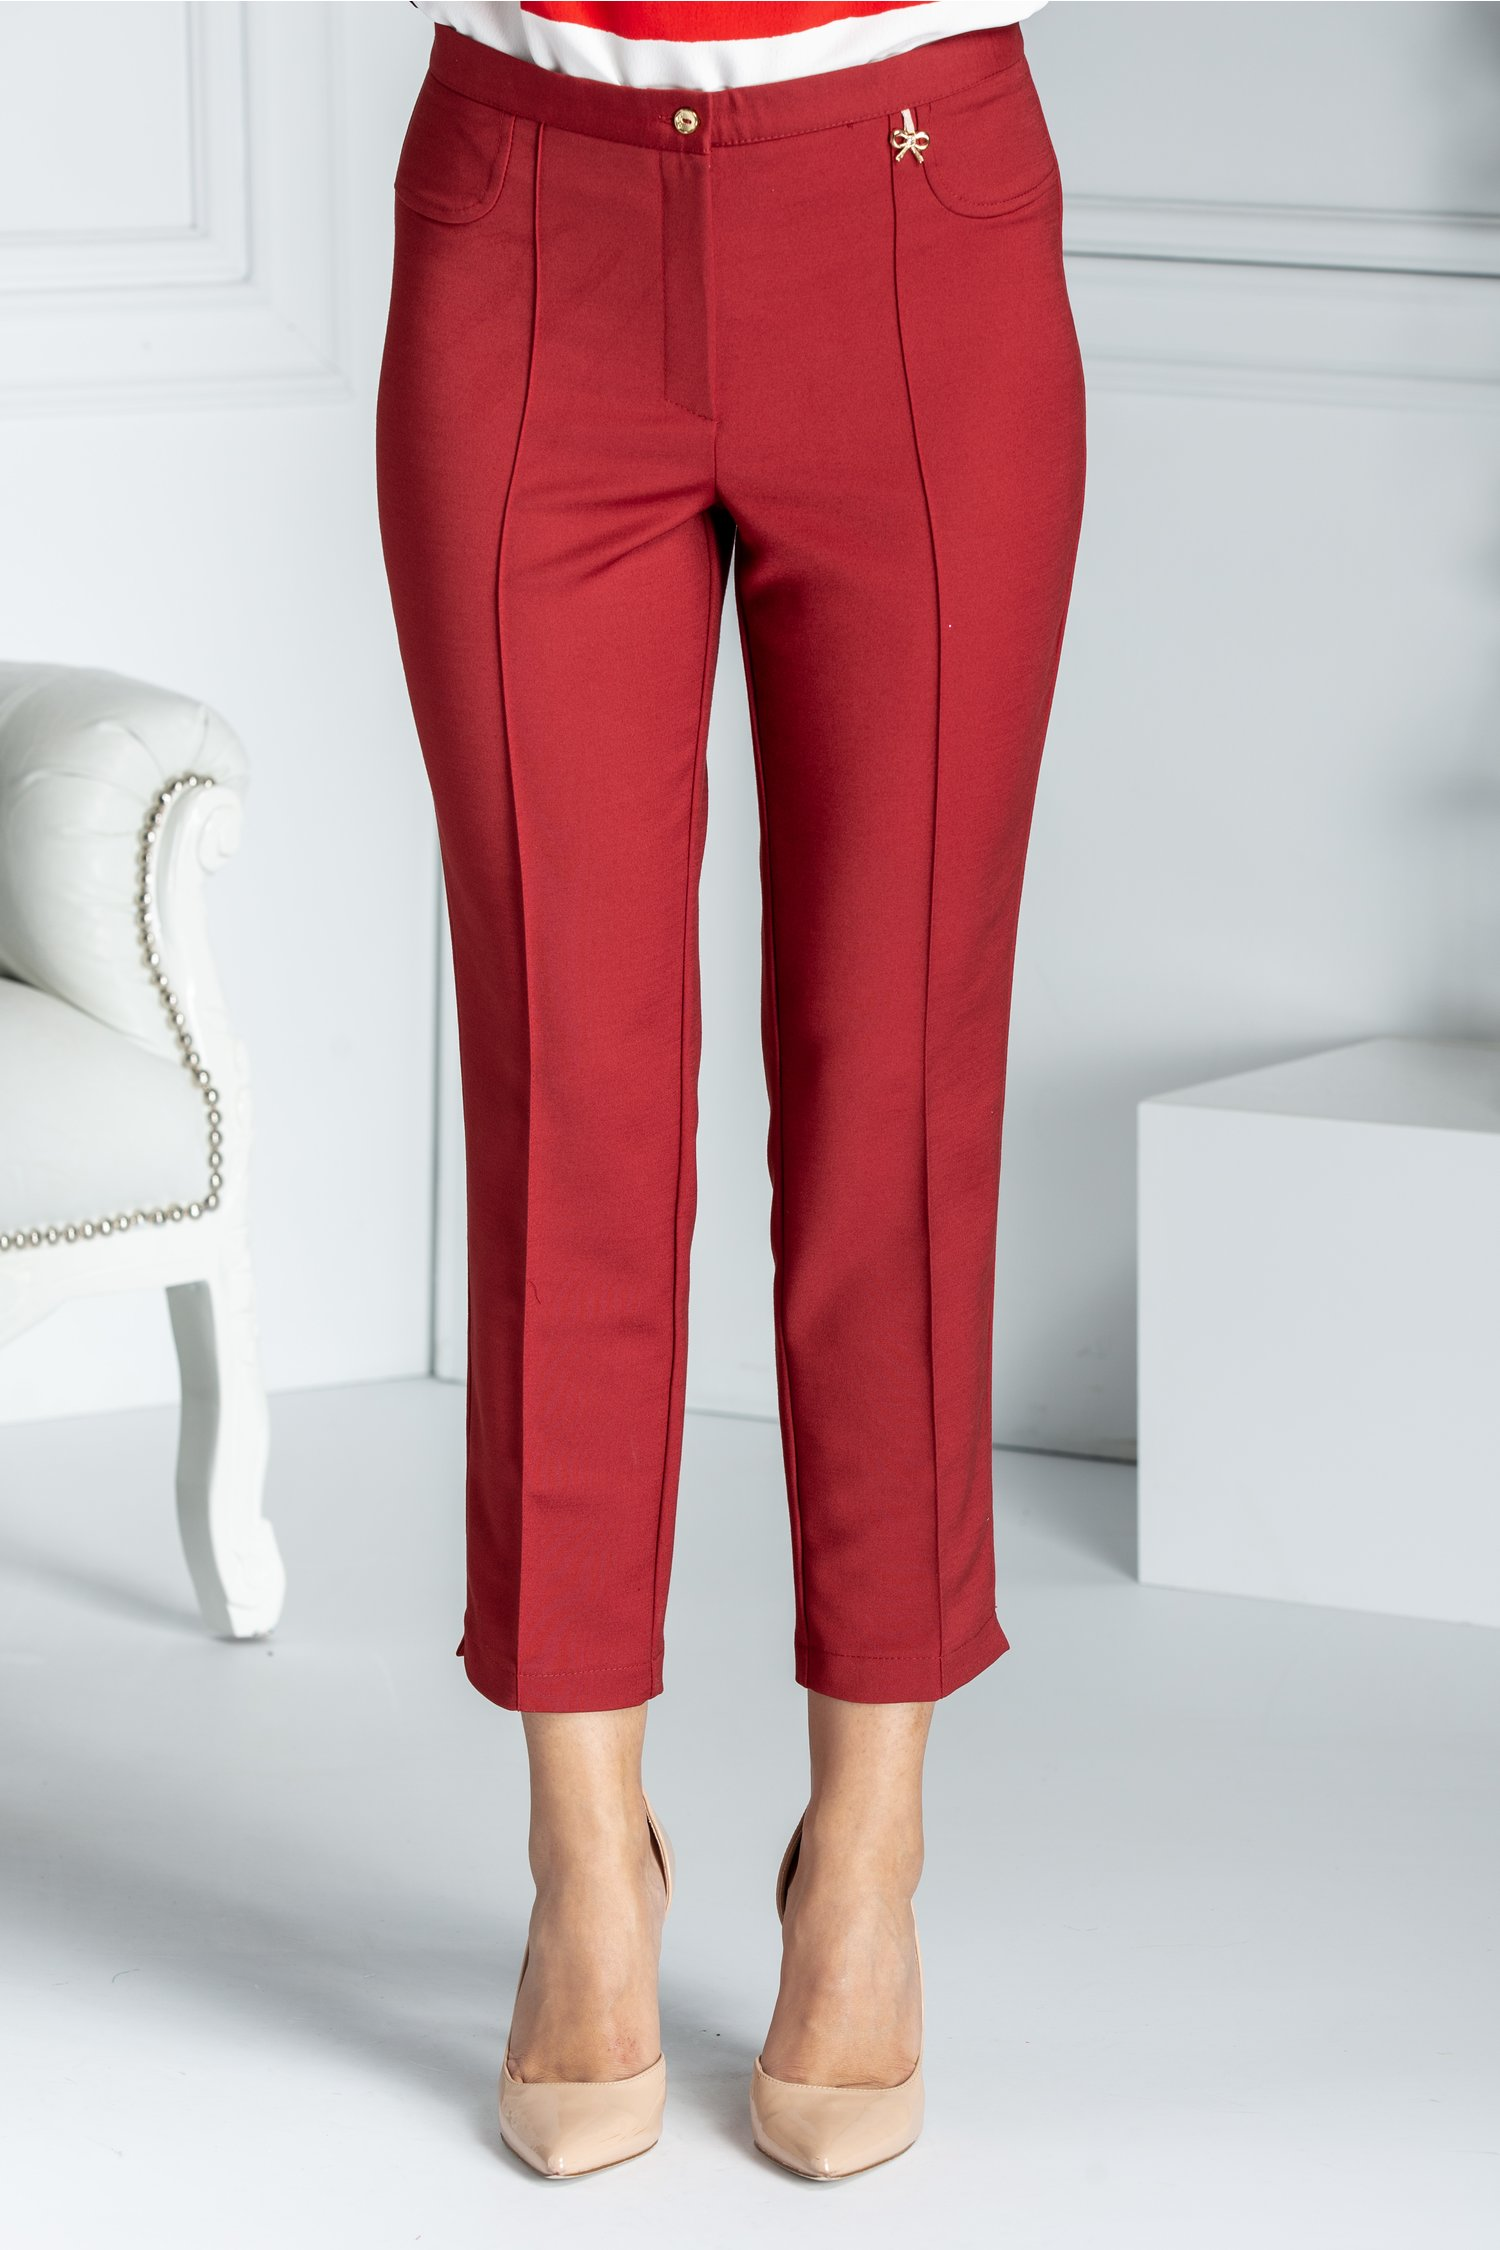 Pantalon Dalida bordo cu dunga office